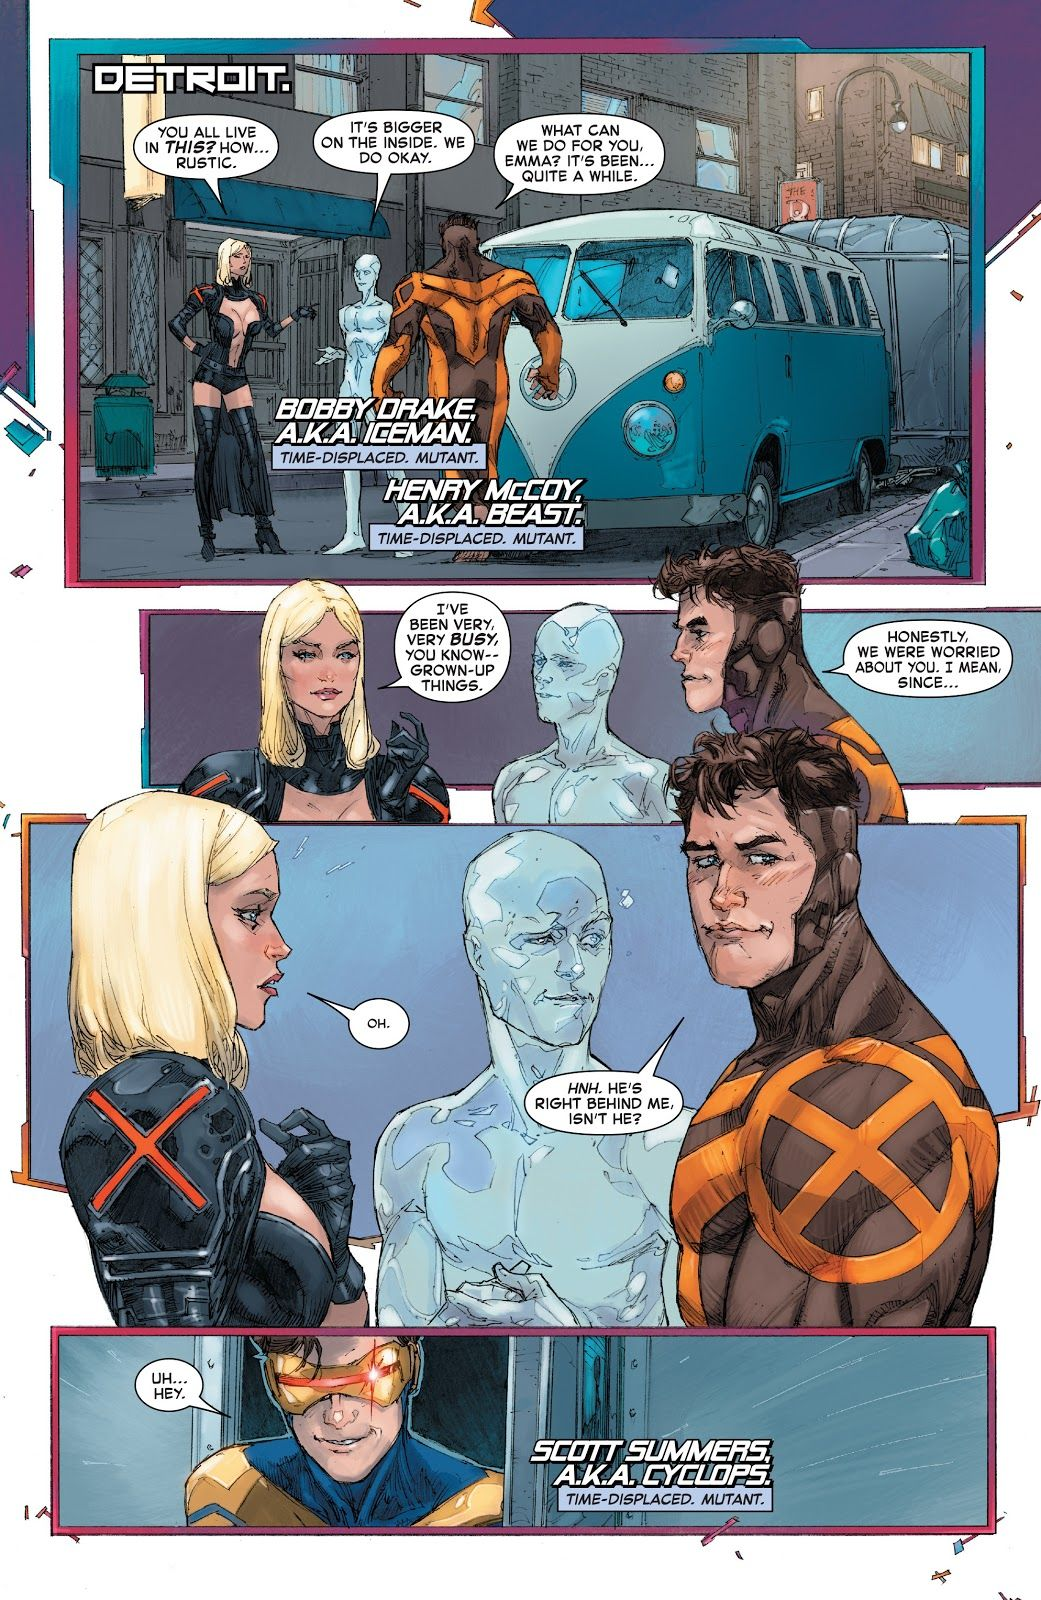 Inhumans Vs X Men Issue 0 Read Inhumans Vs X Men Issue 0 Comic Online In High Quality X Men Comics Comics Online